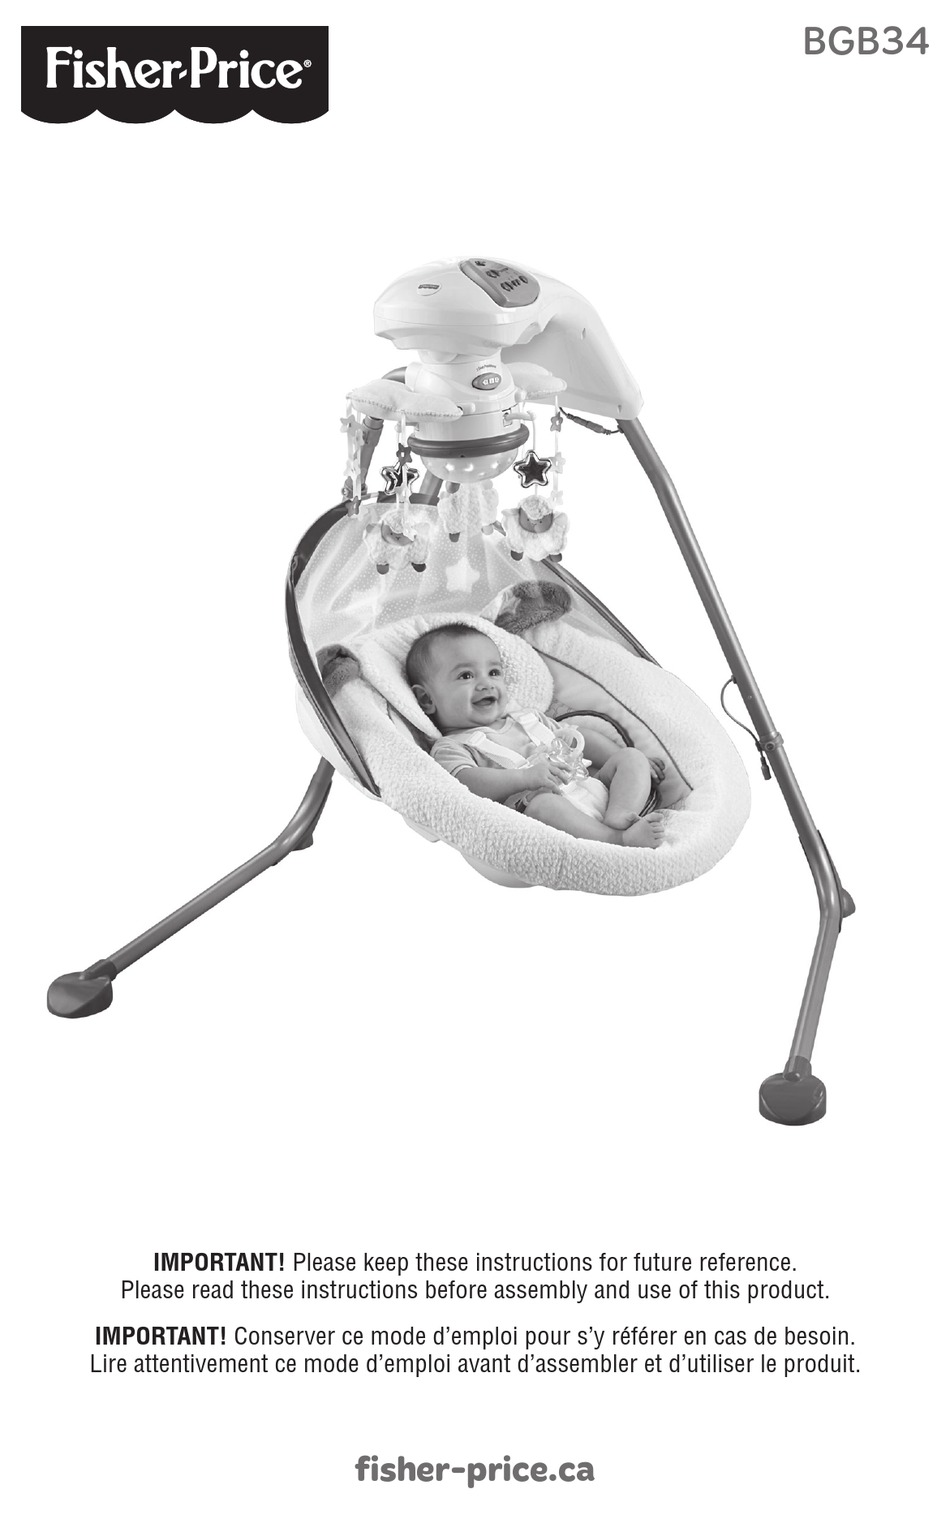 How To Remove Legs From Fisher Price Baby Dome : remove, fisher, price, FISHER-PRICE, BGB34, MANUAL, Download, ManualsLib